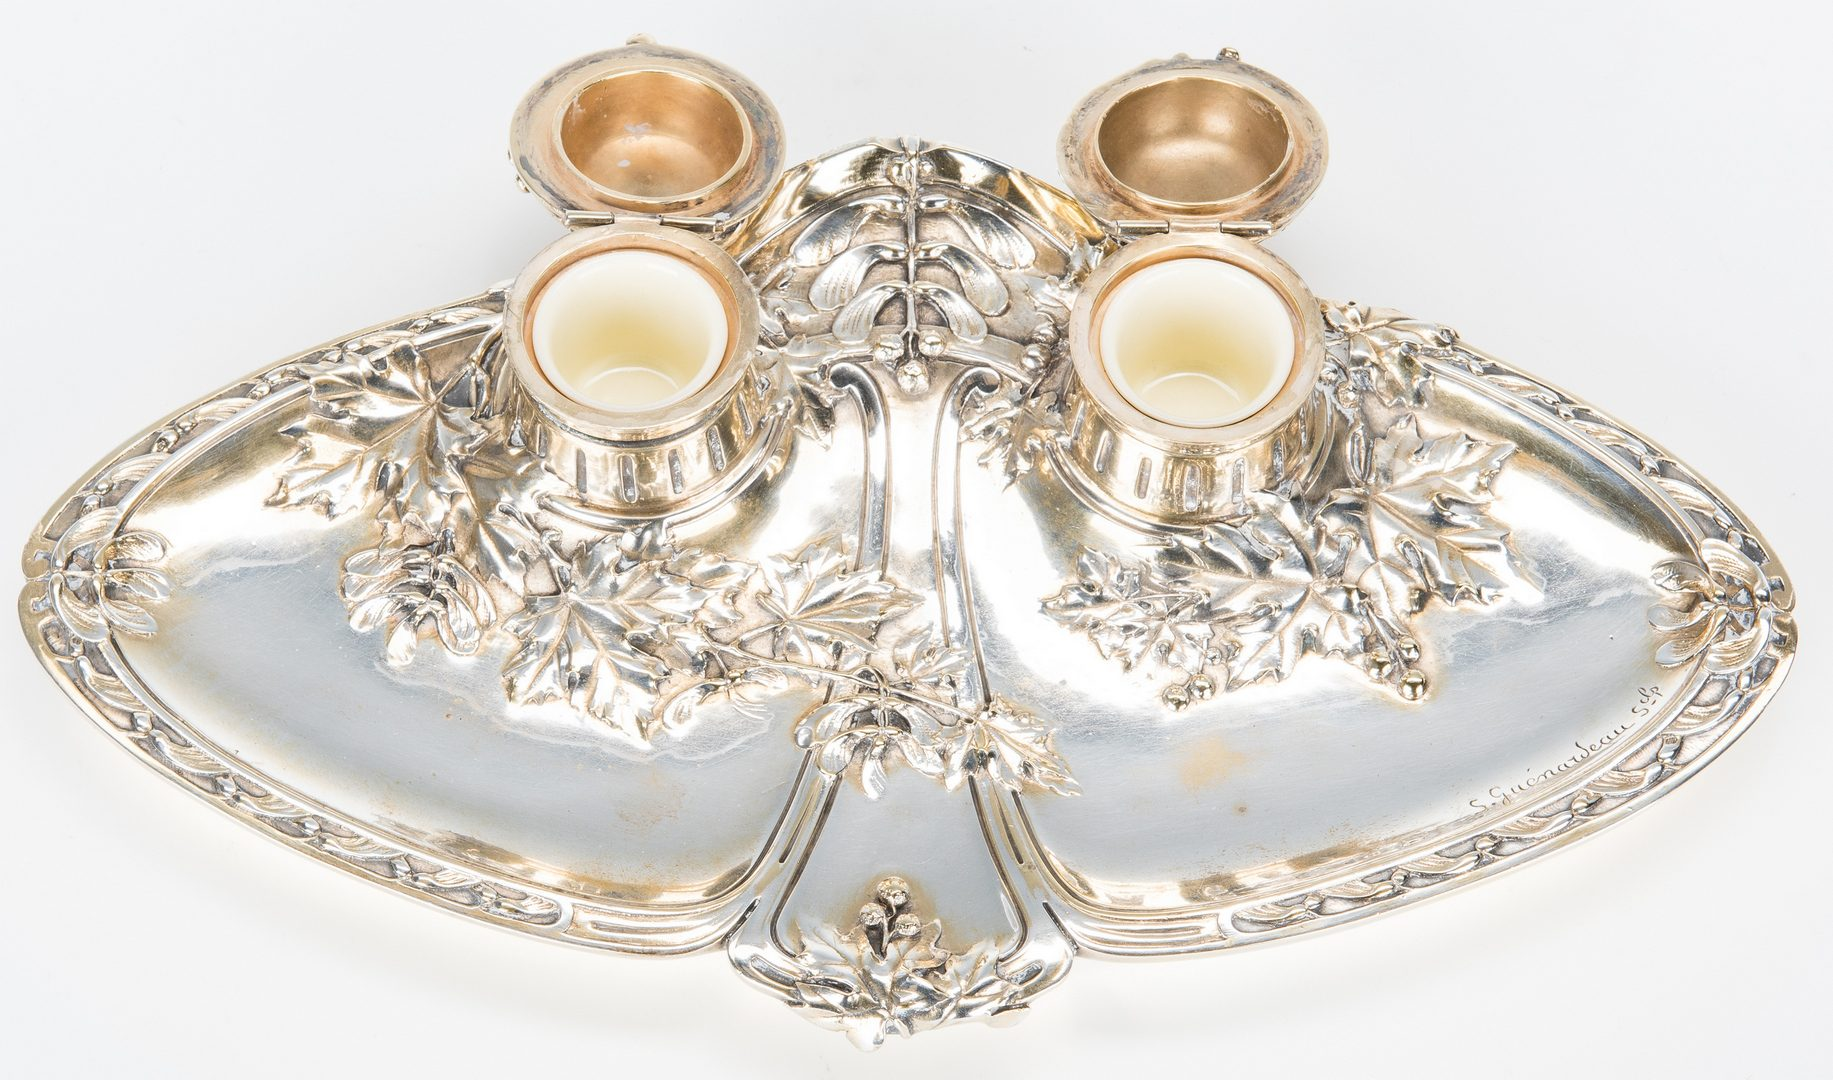 Lot 388: 2 Art Nouveau French Inkwells, signed